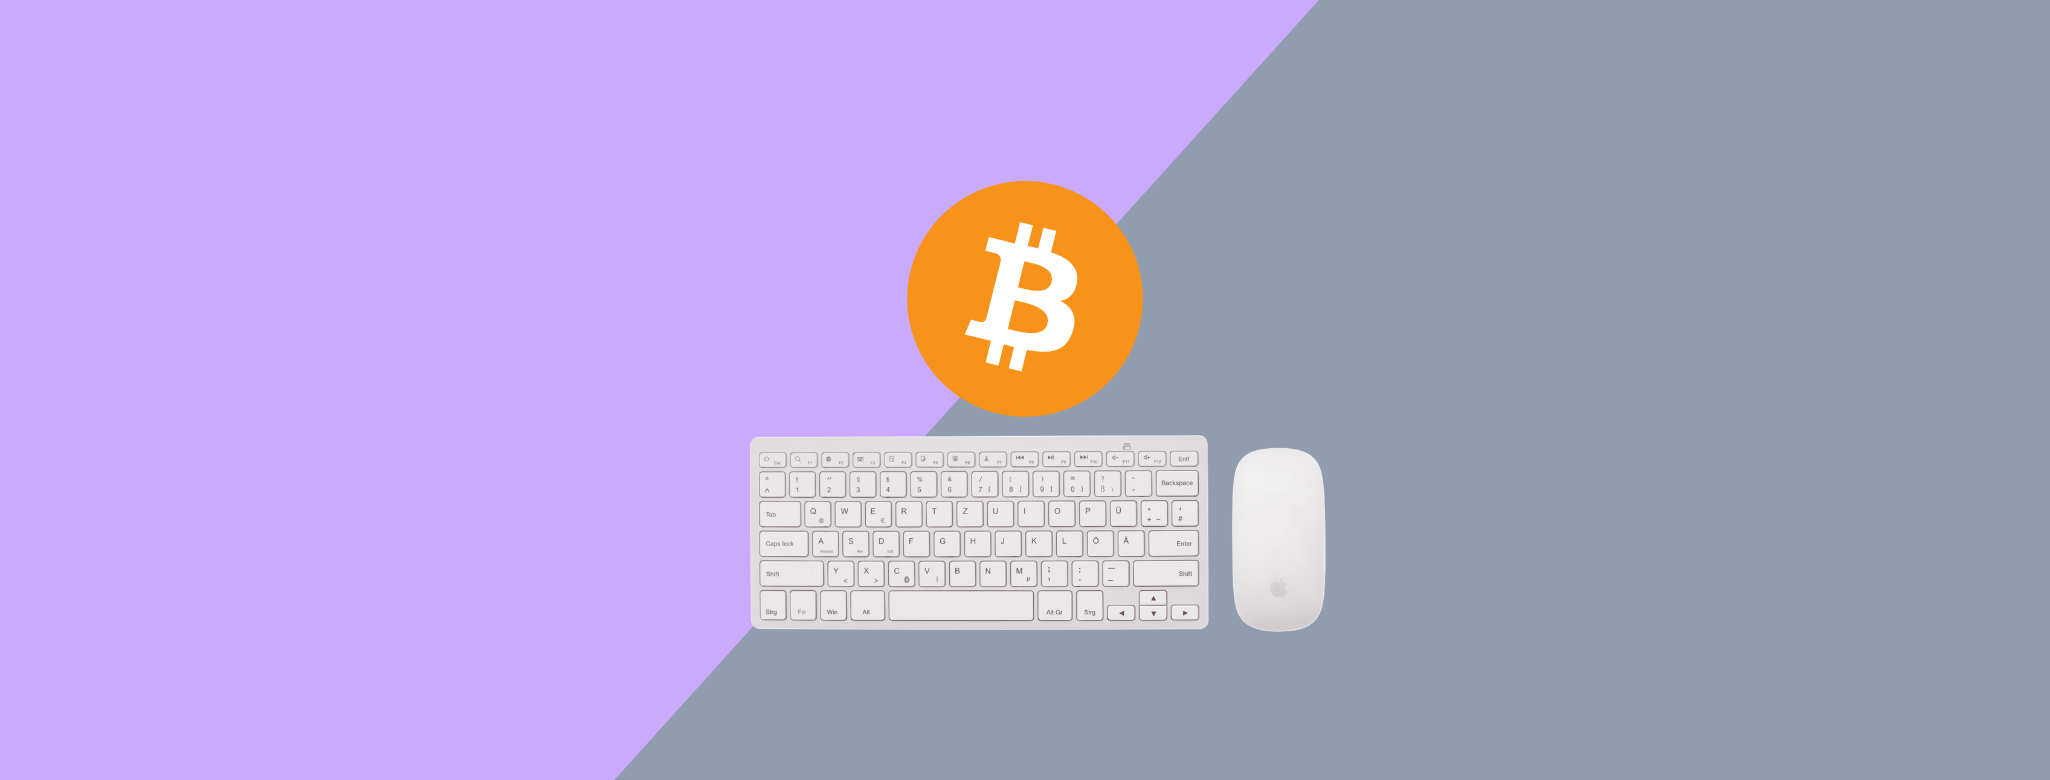 Best Online Tools to Get Bitcoin for Free